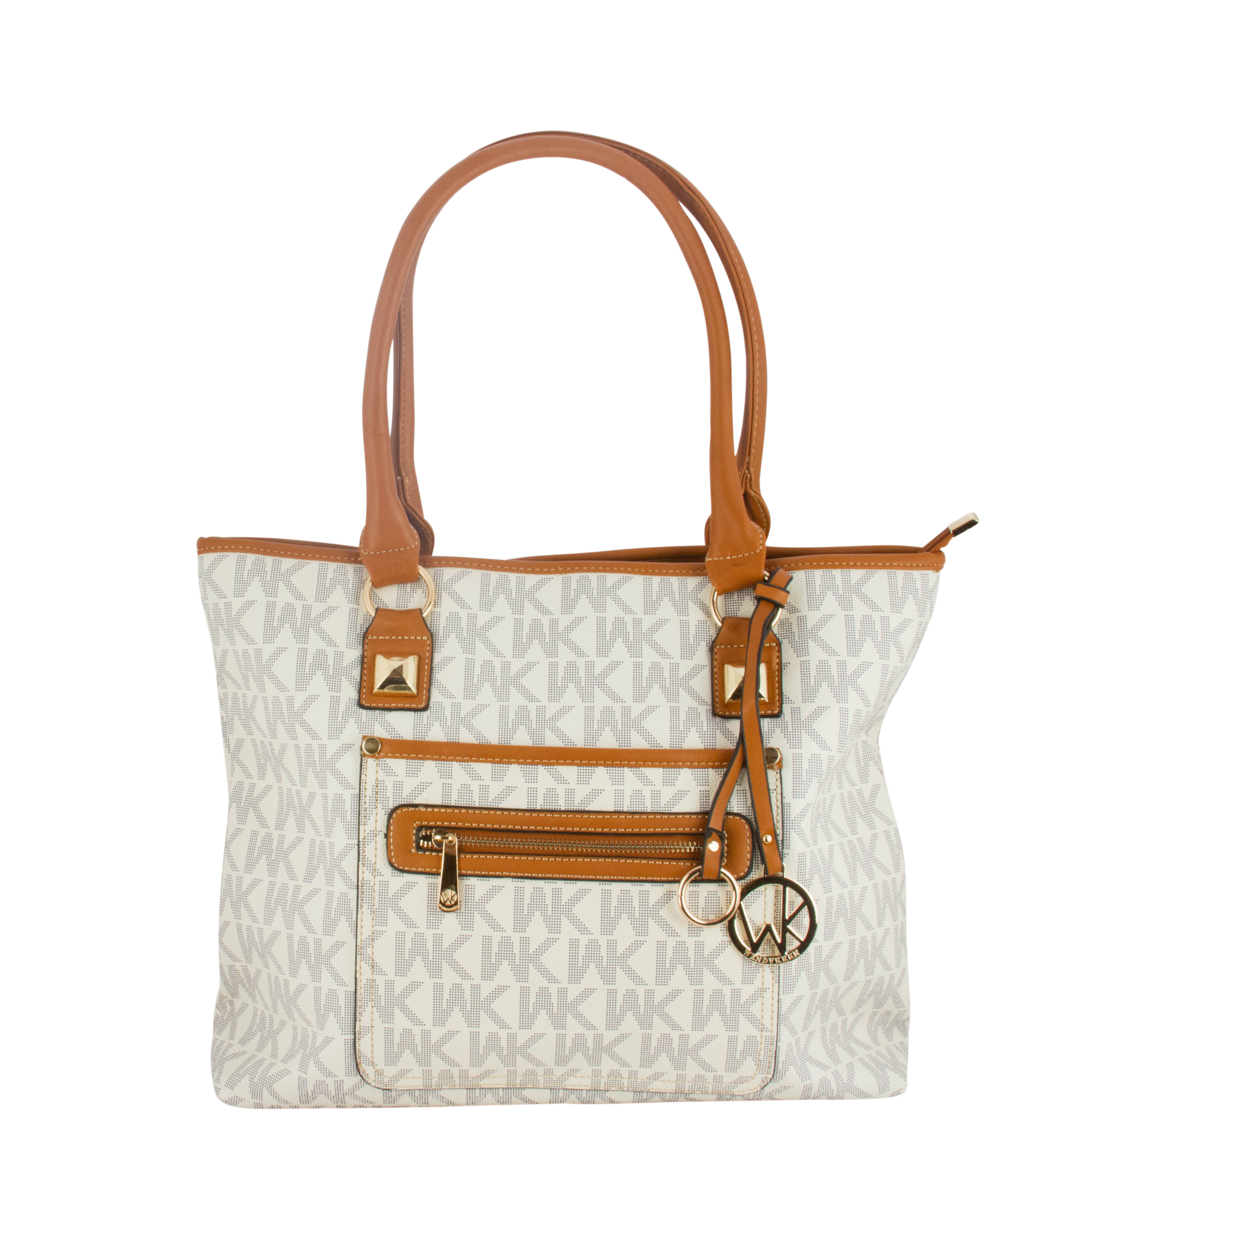 WK Collection Printed Handbags (8093) - White/Camel